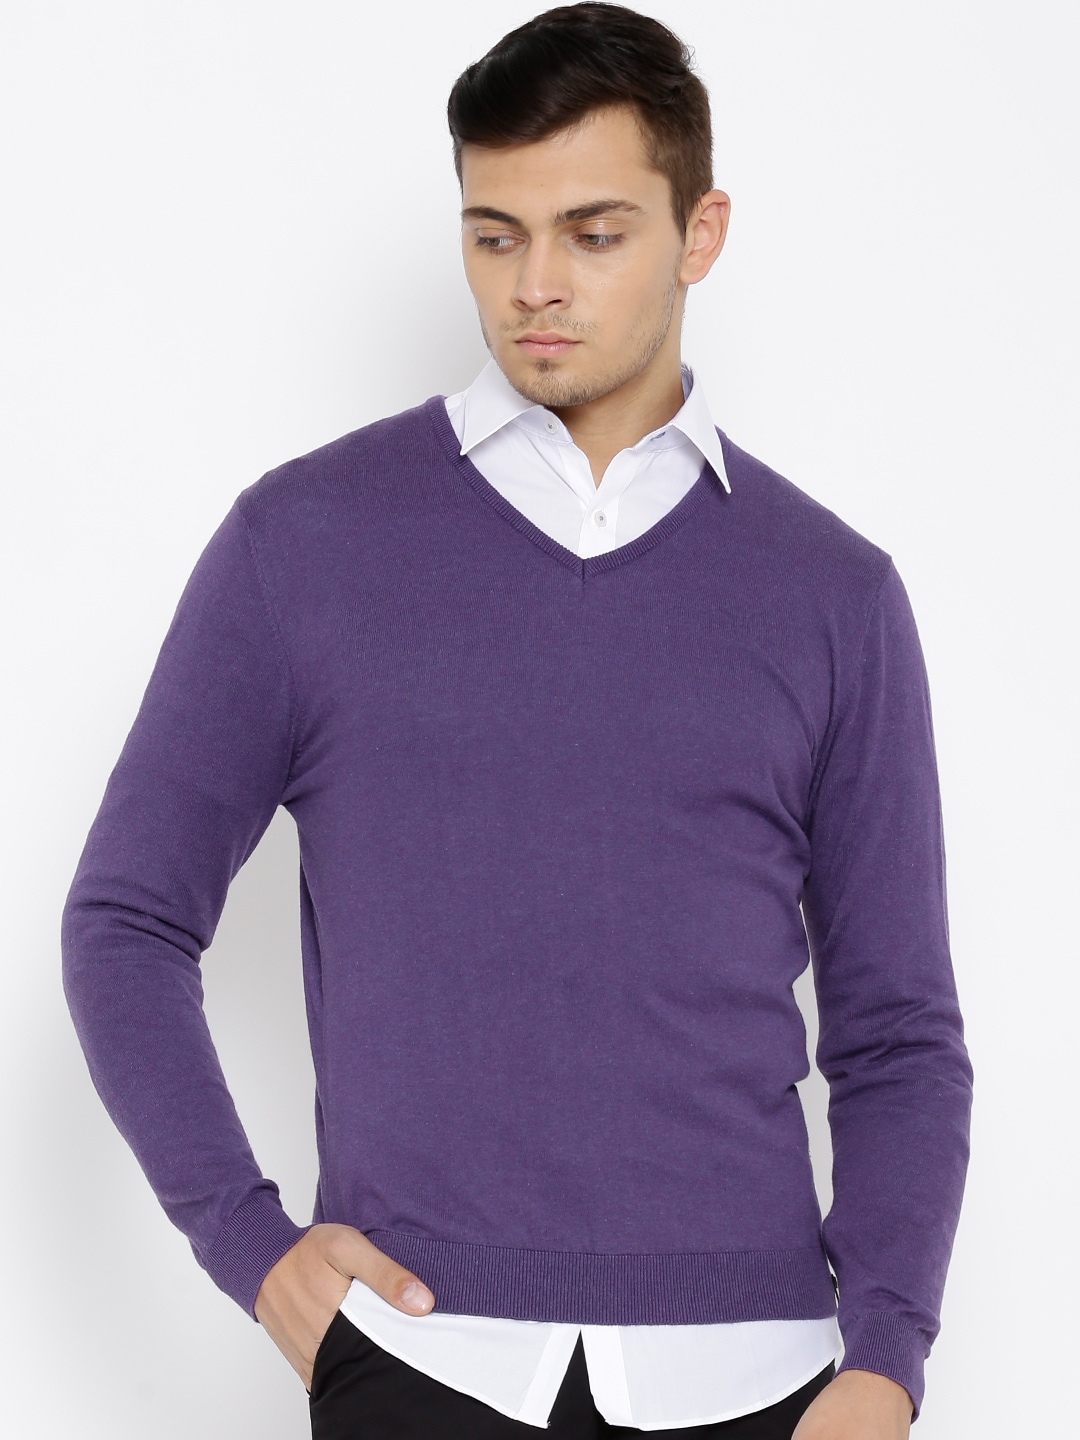 Mens Lavender Sweater Vest Fashion Skirts